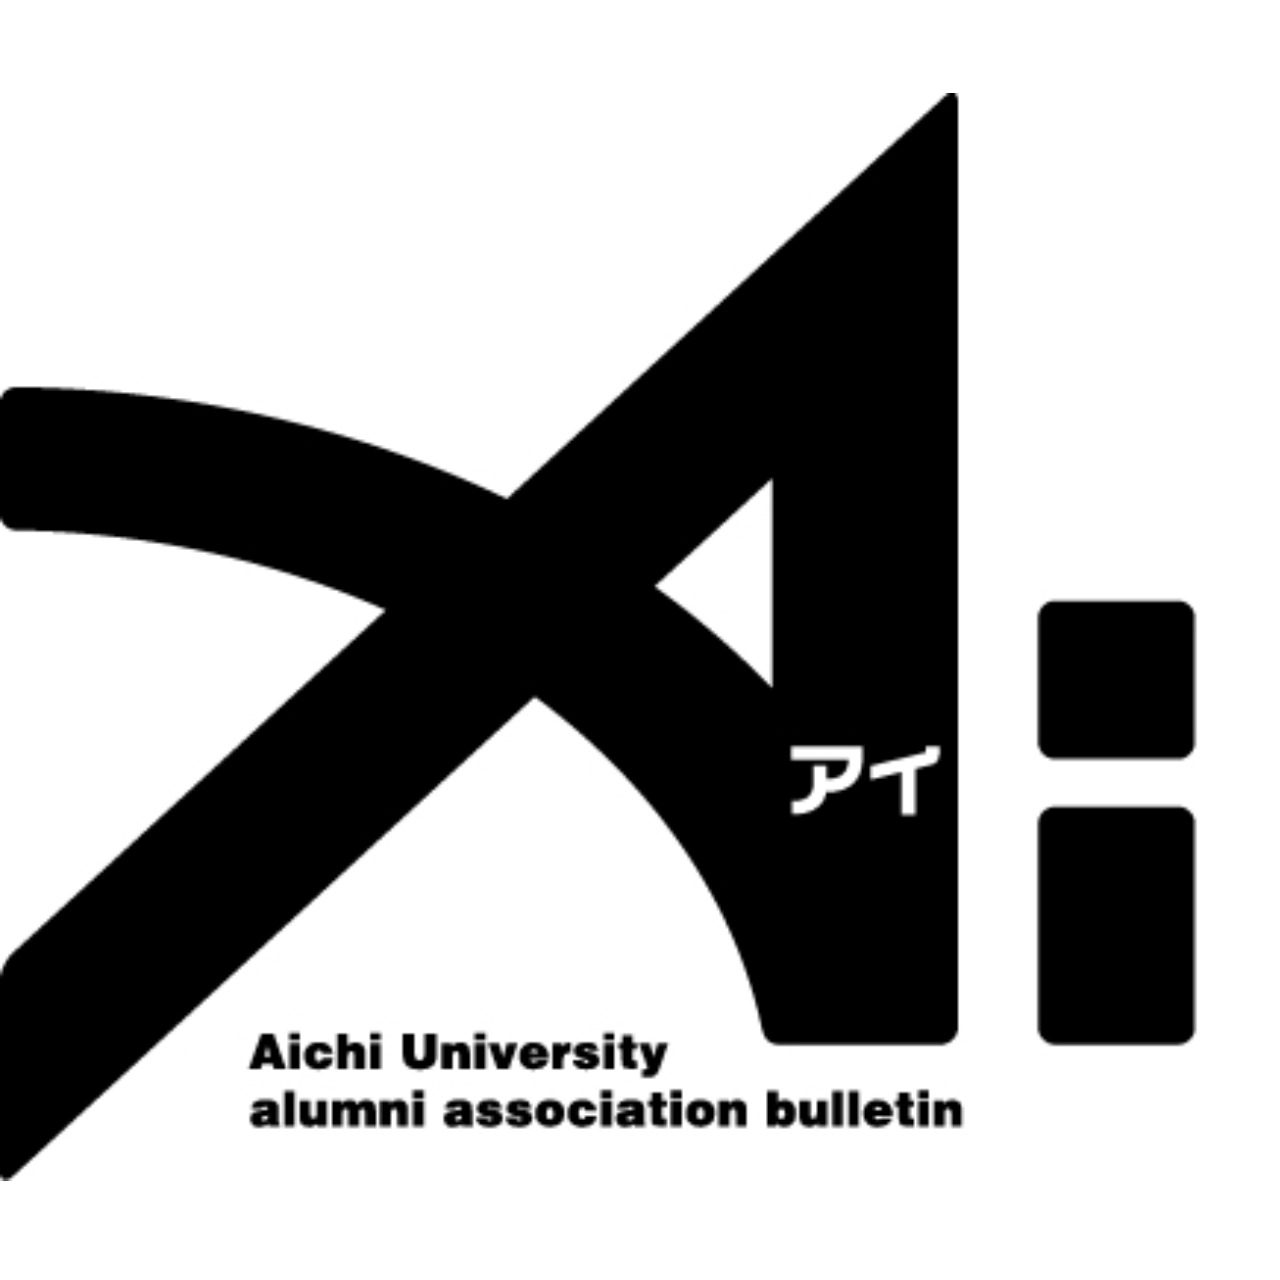 Aichi University alumnl association bulletin